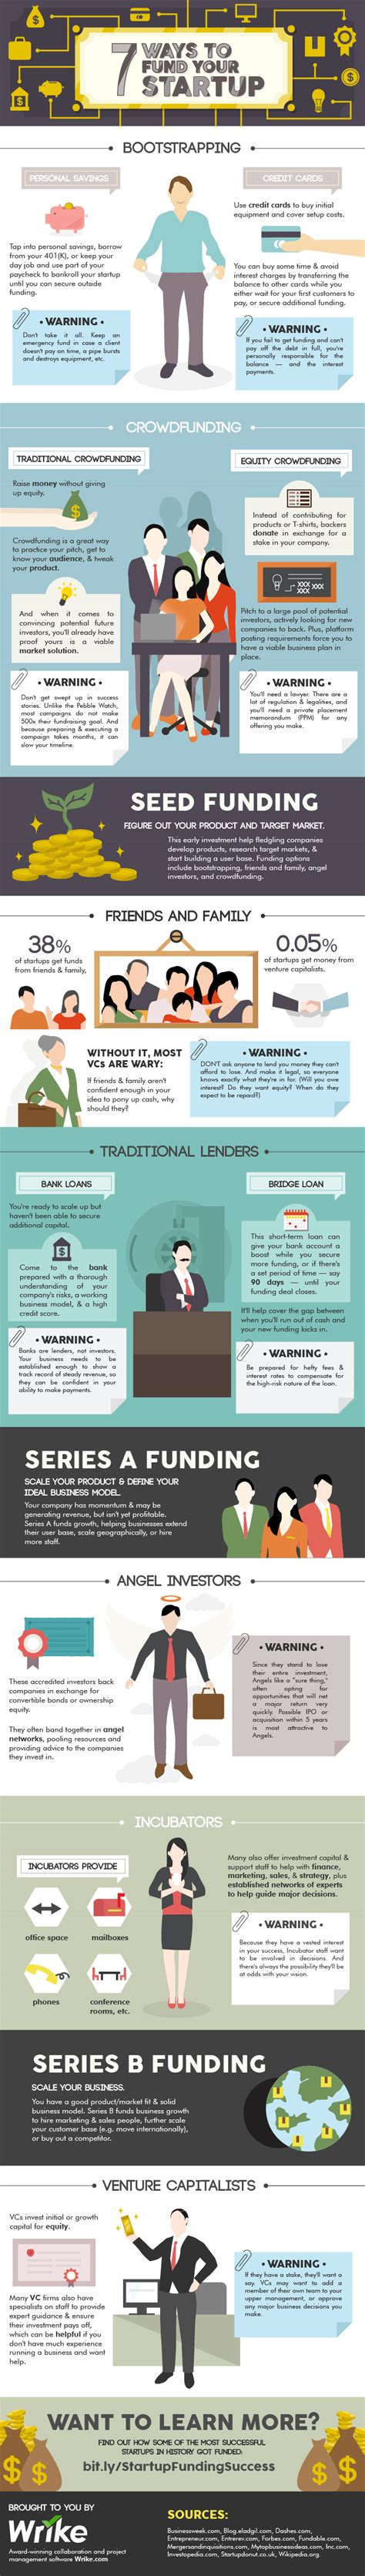 7 Ways To Fund Your Startup (infographic